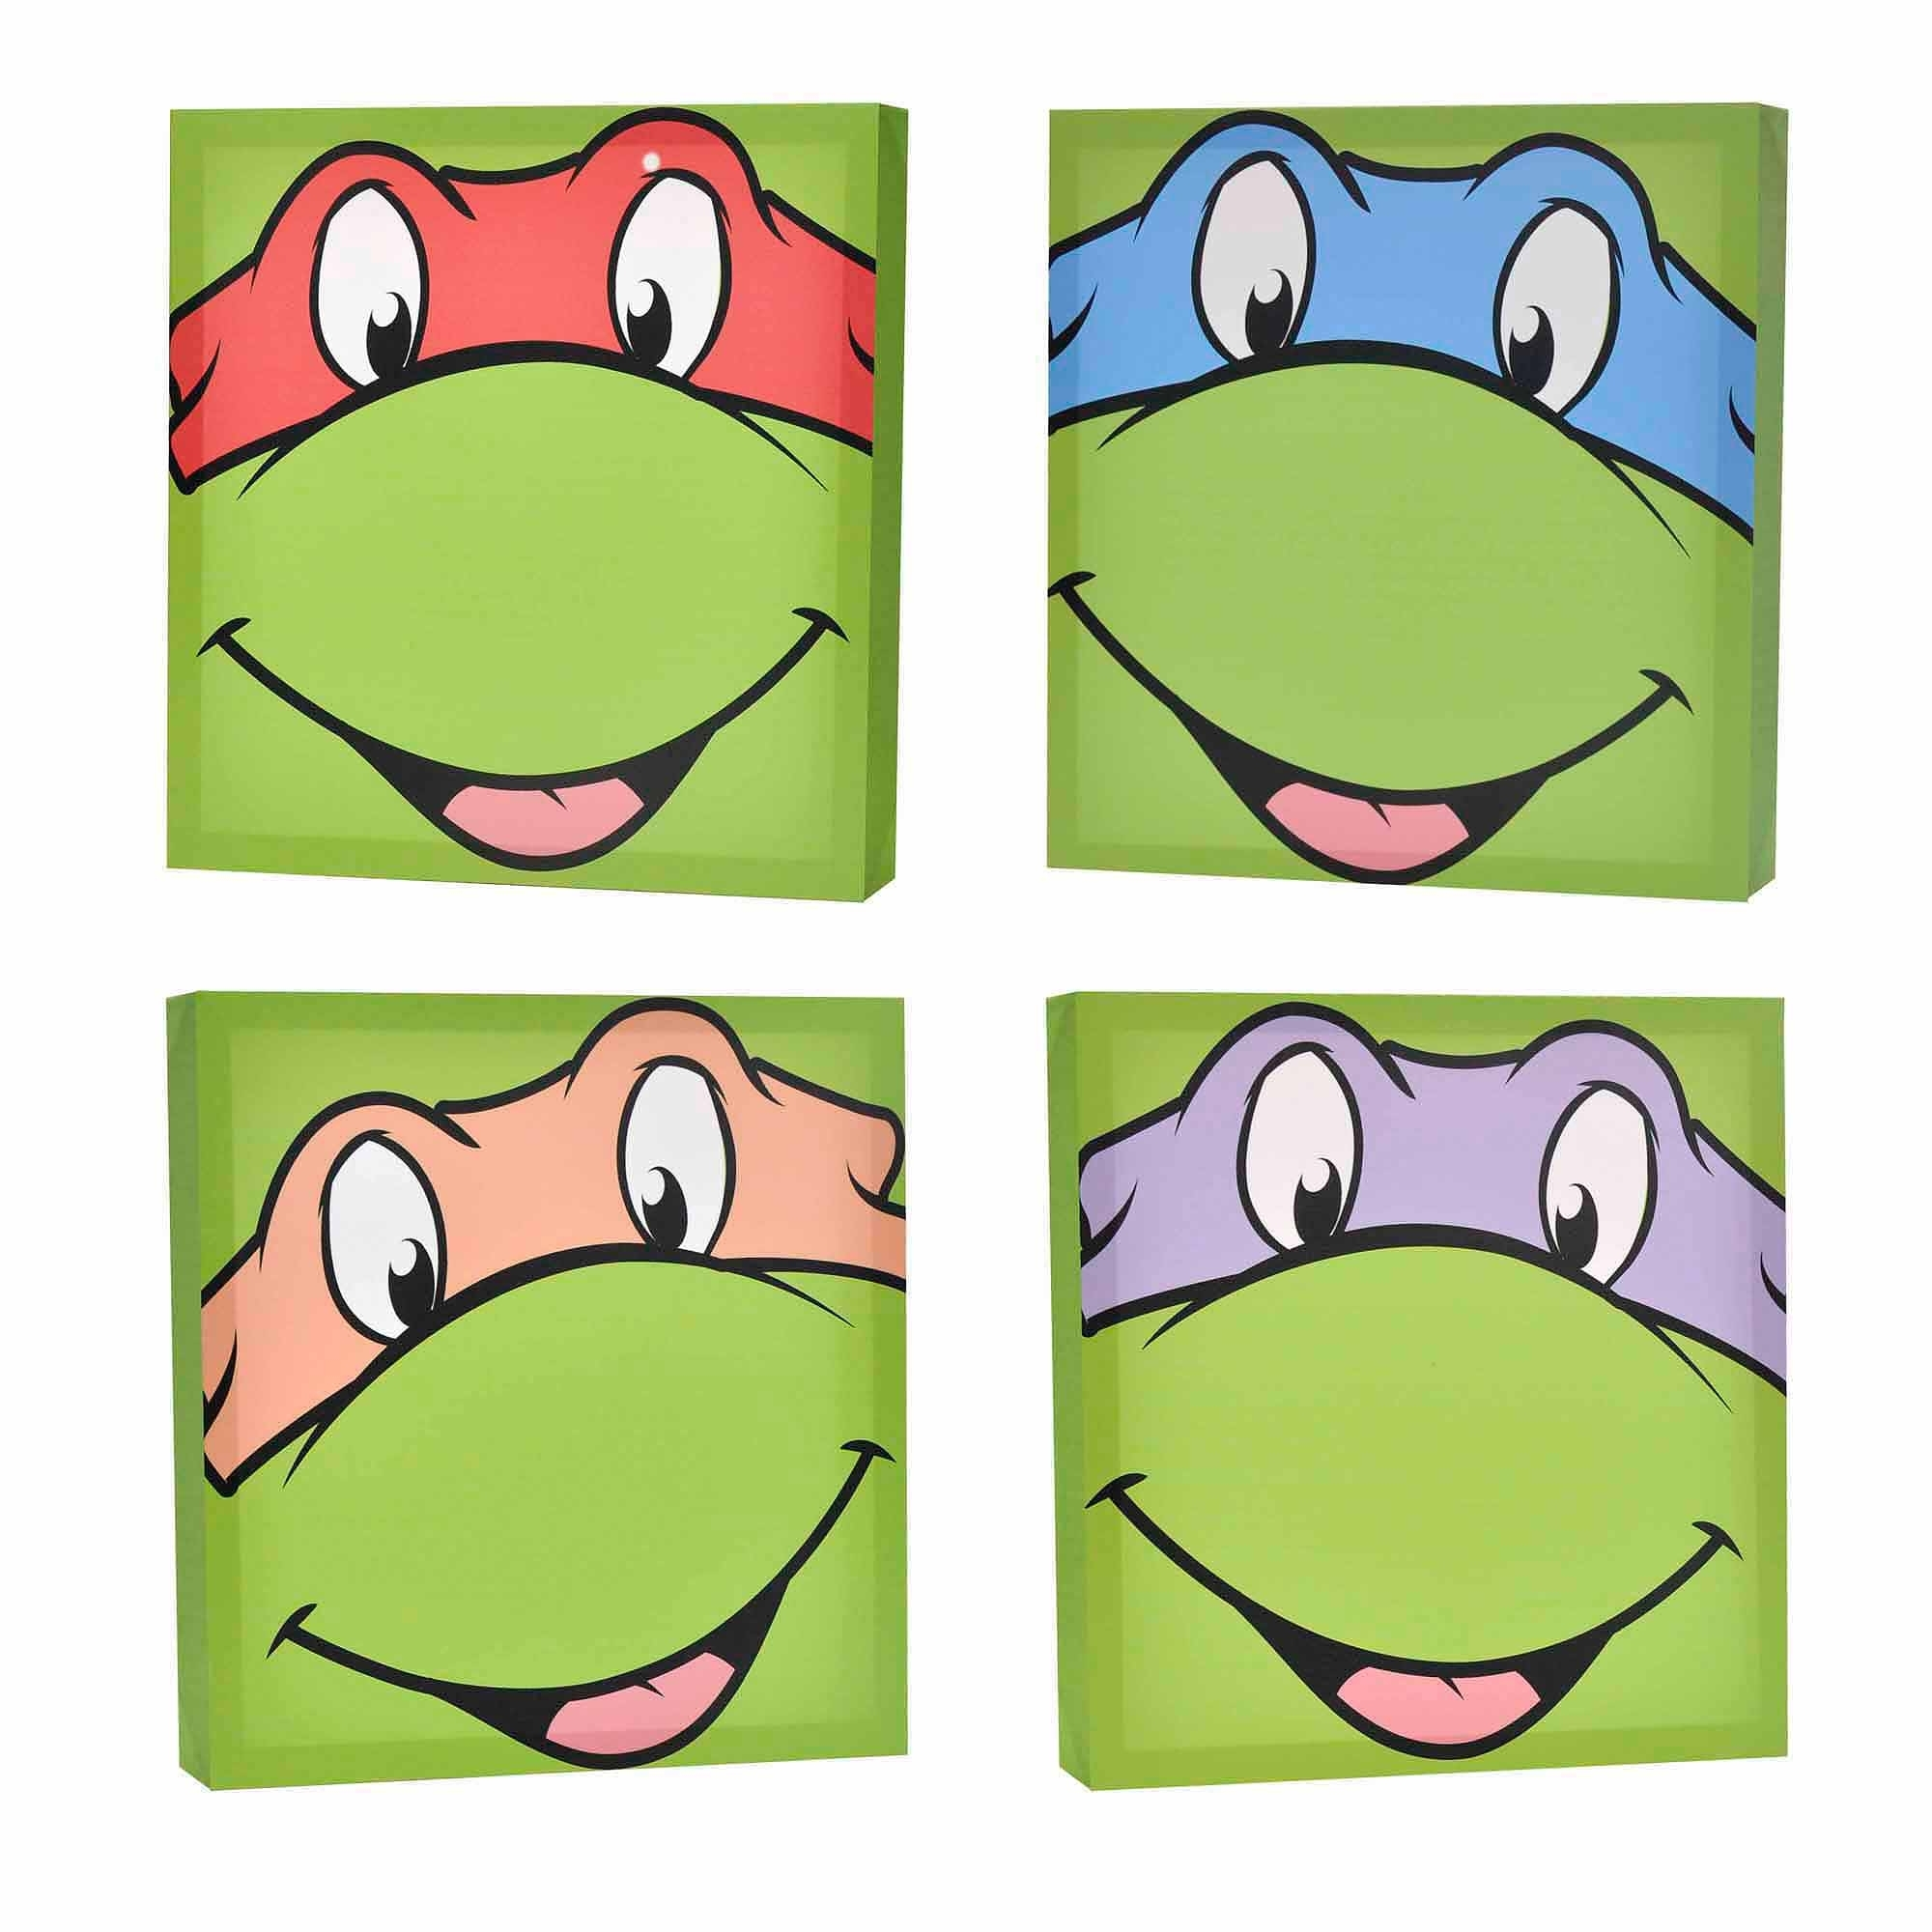 Nickelodeon Teenage Mutant Ninja Turtles 4 Pack Canvas Wall Art Regarding Most Popular Ninja Turtle Wall Art (View 11 of 20)